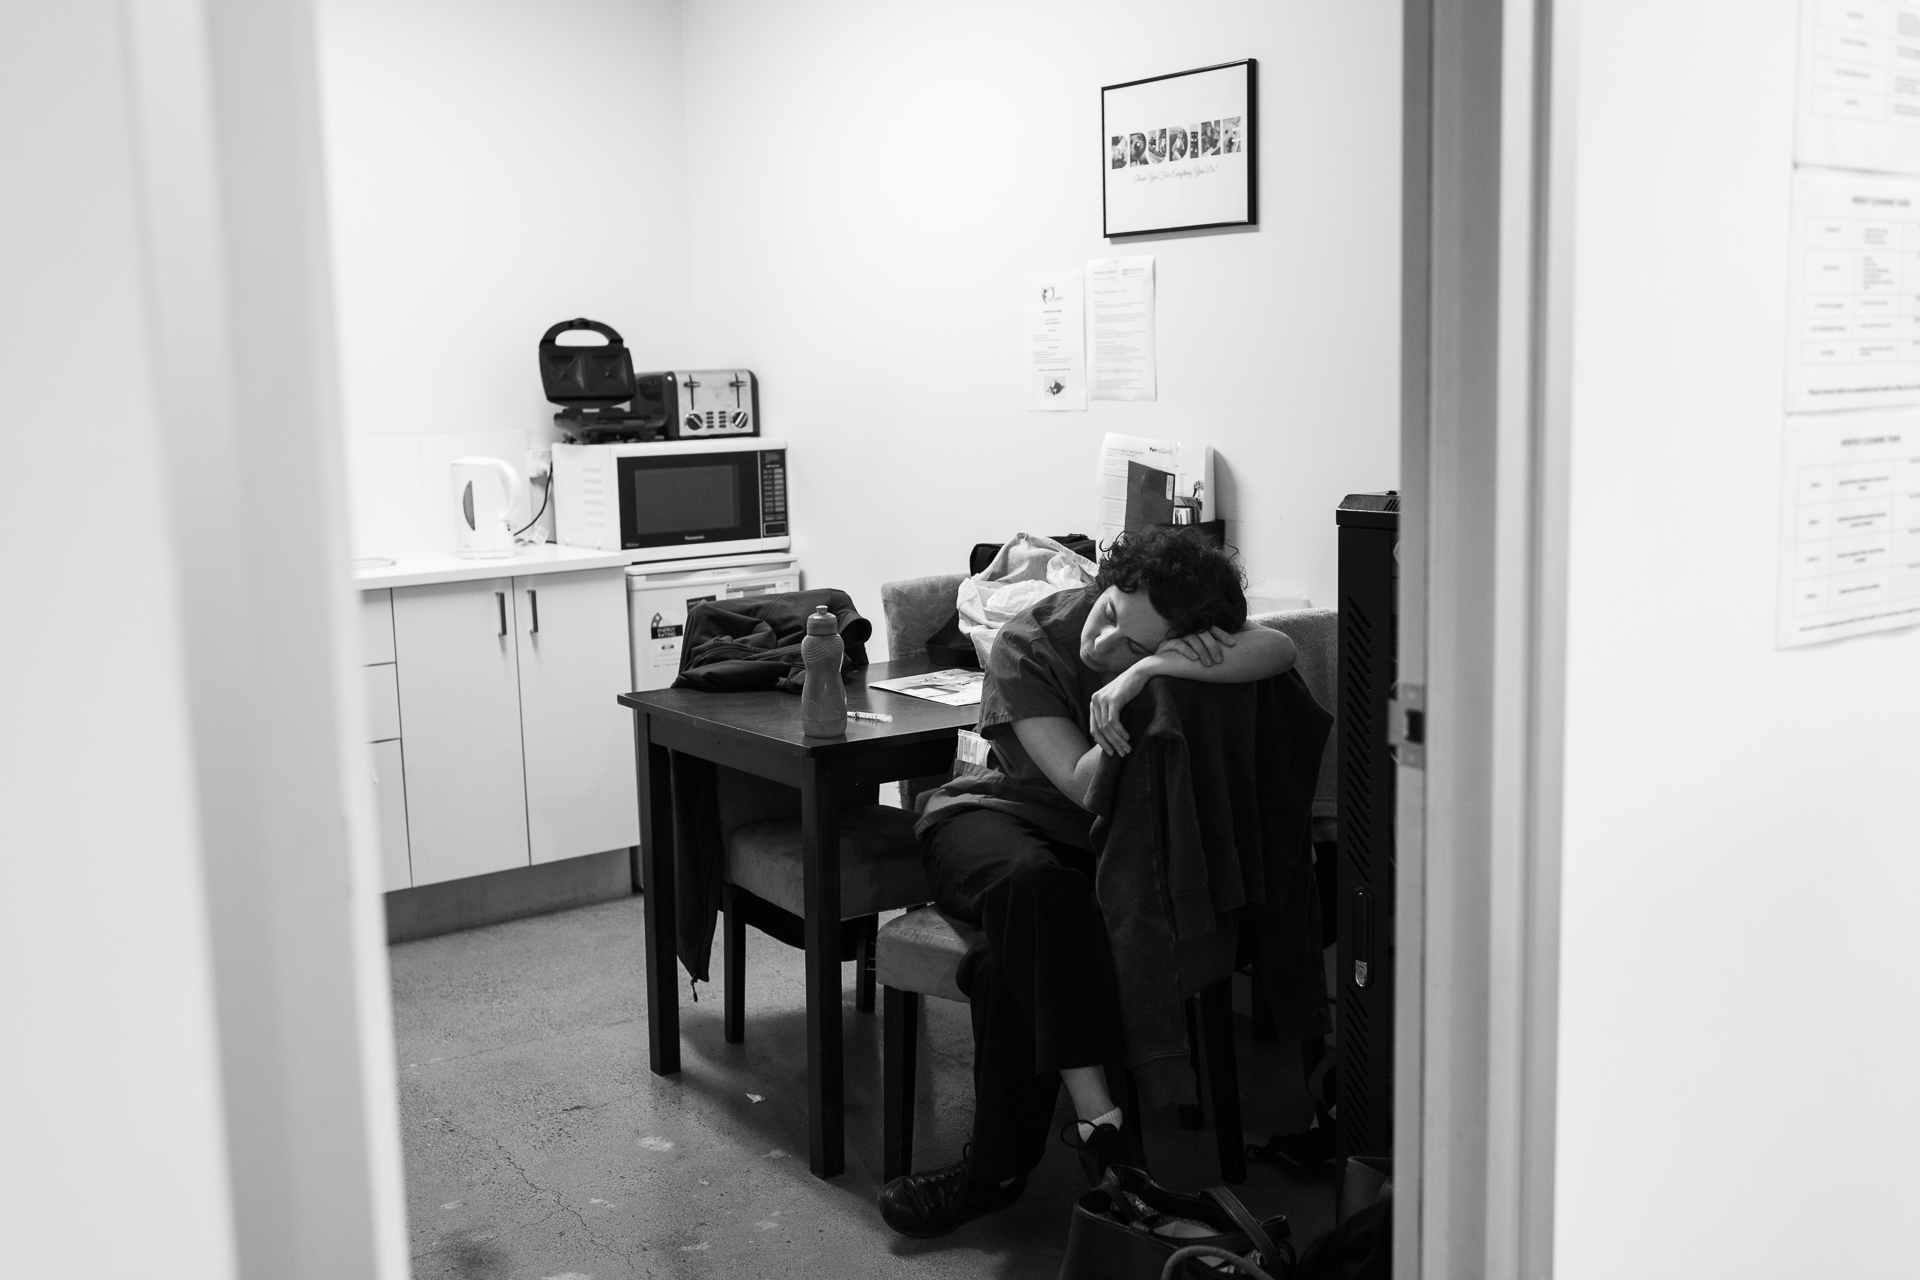 Dr Gwen Shirlow takes advantage of a few free minutes to rest. She returned to work after a serious illness but has not completely recovered and goes home early.  31 January, 2018.